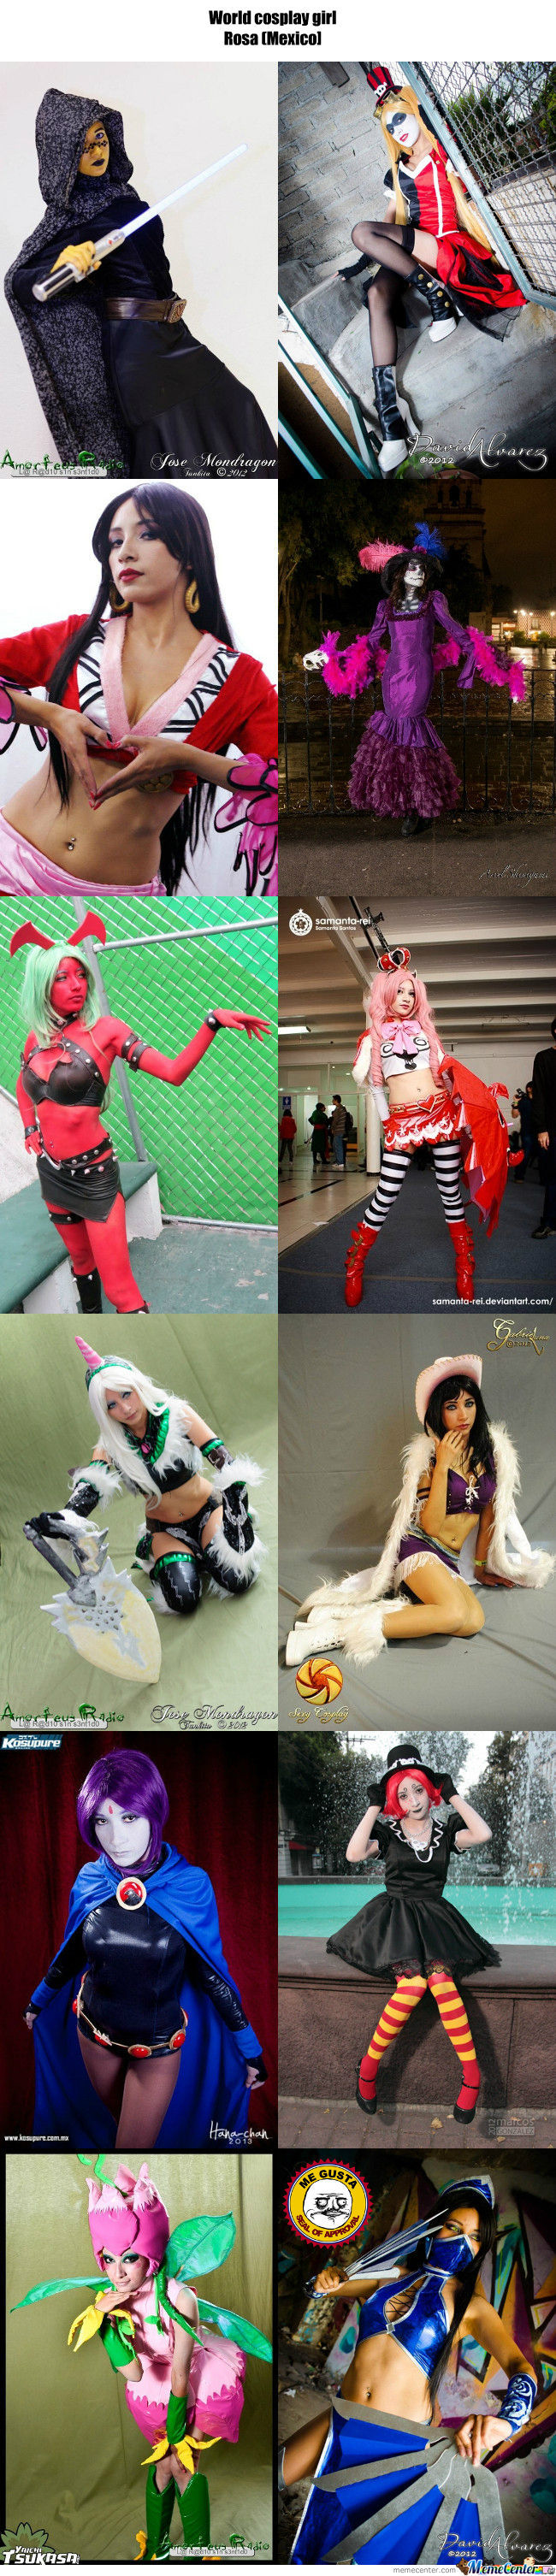 Cosplay Girl 61 : Rosa (Mexico)